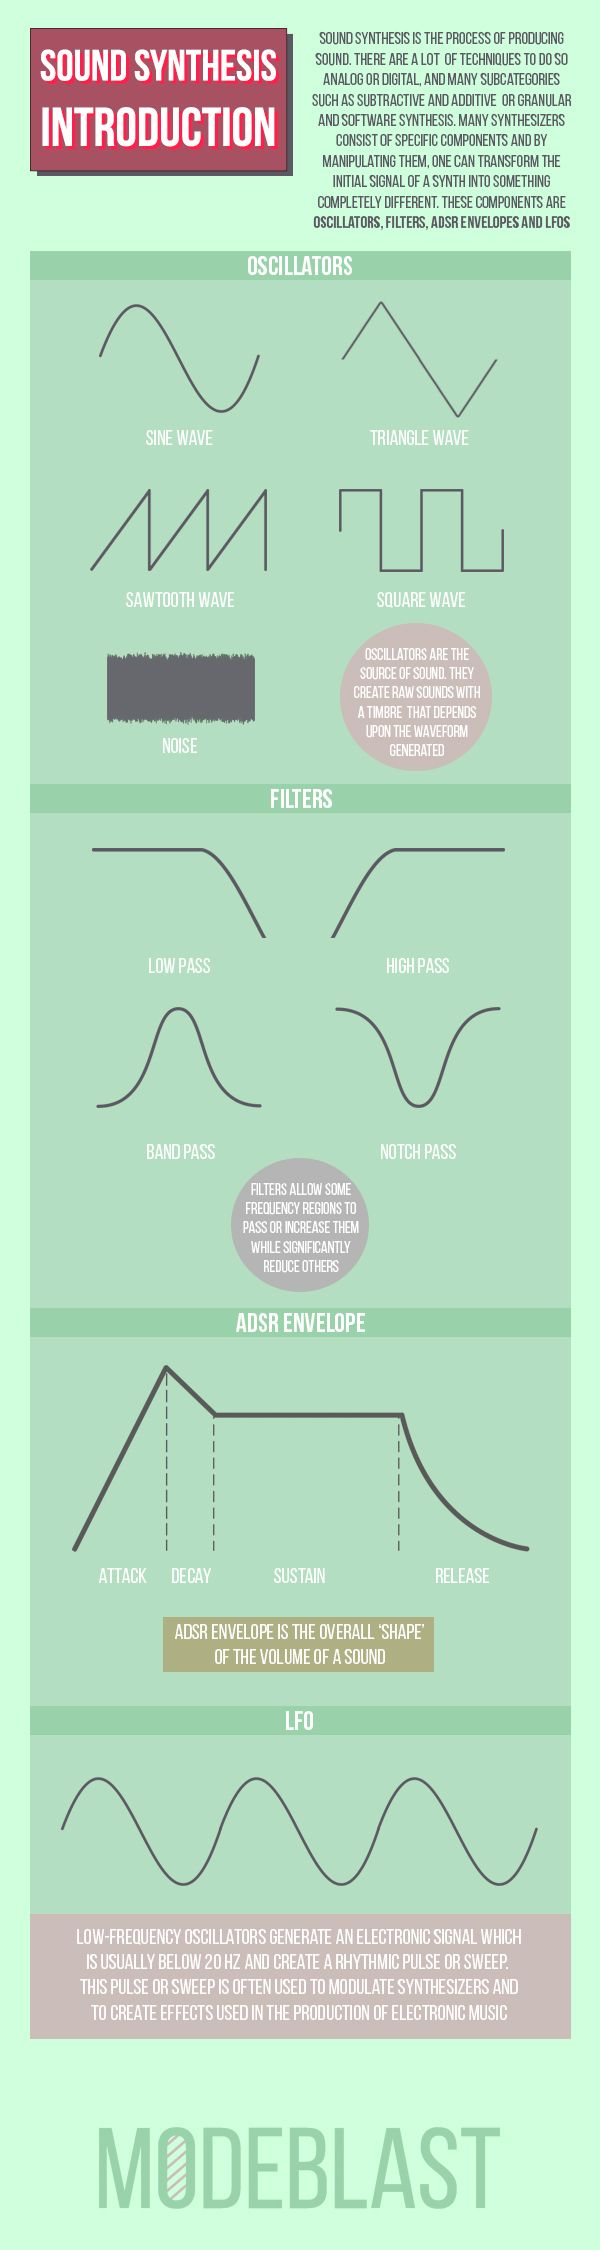 Sound-synthesis-introduction.jpg (600×2250)